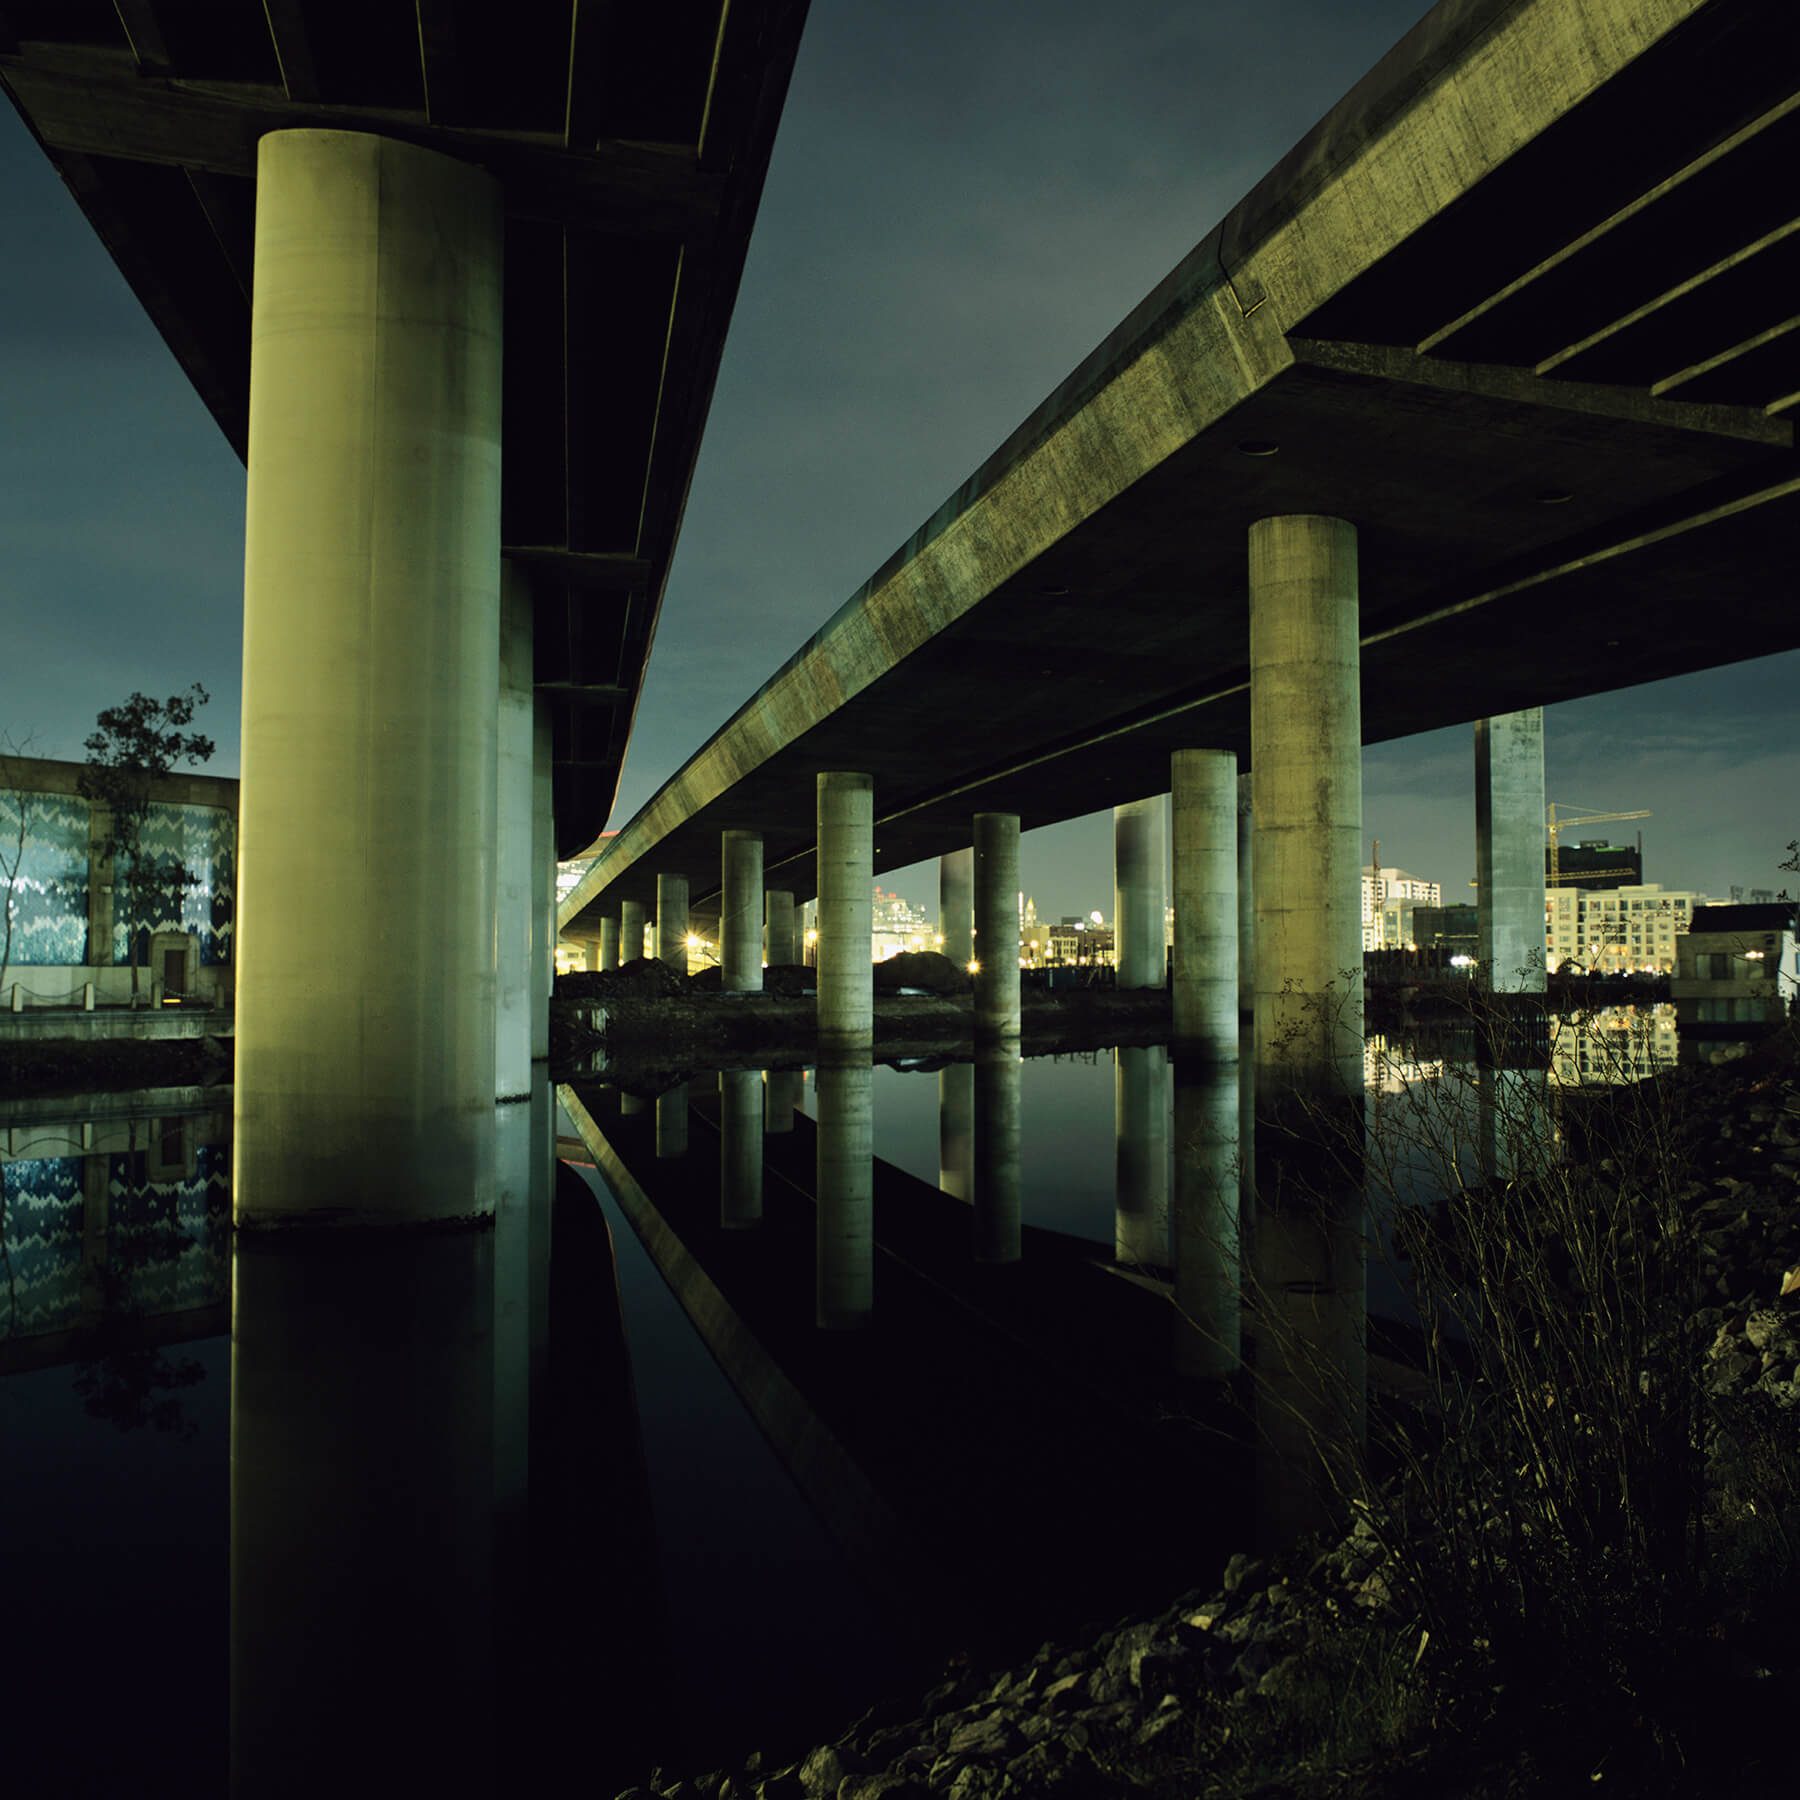 Underneath 280 freeway at night